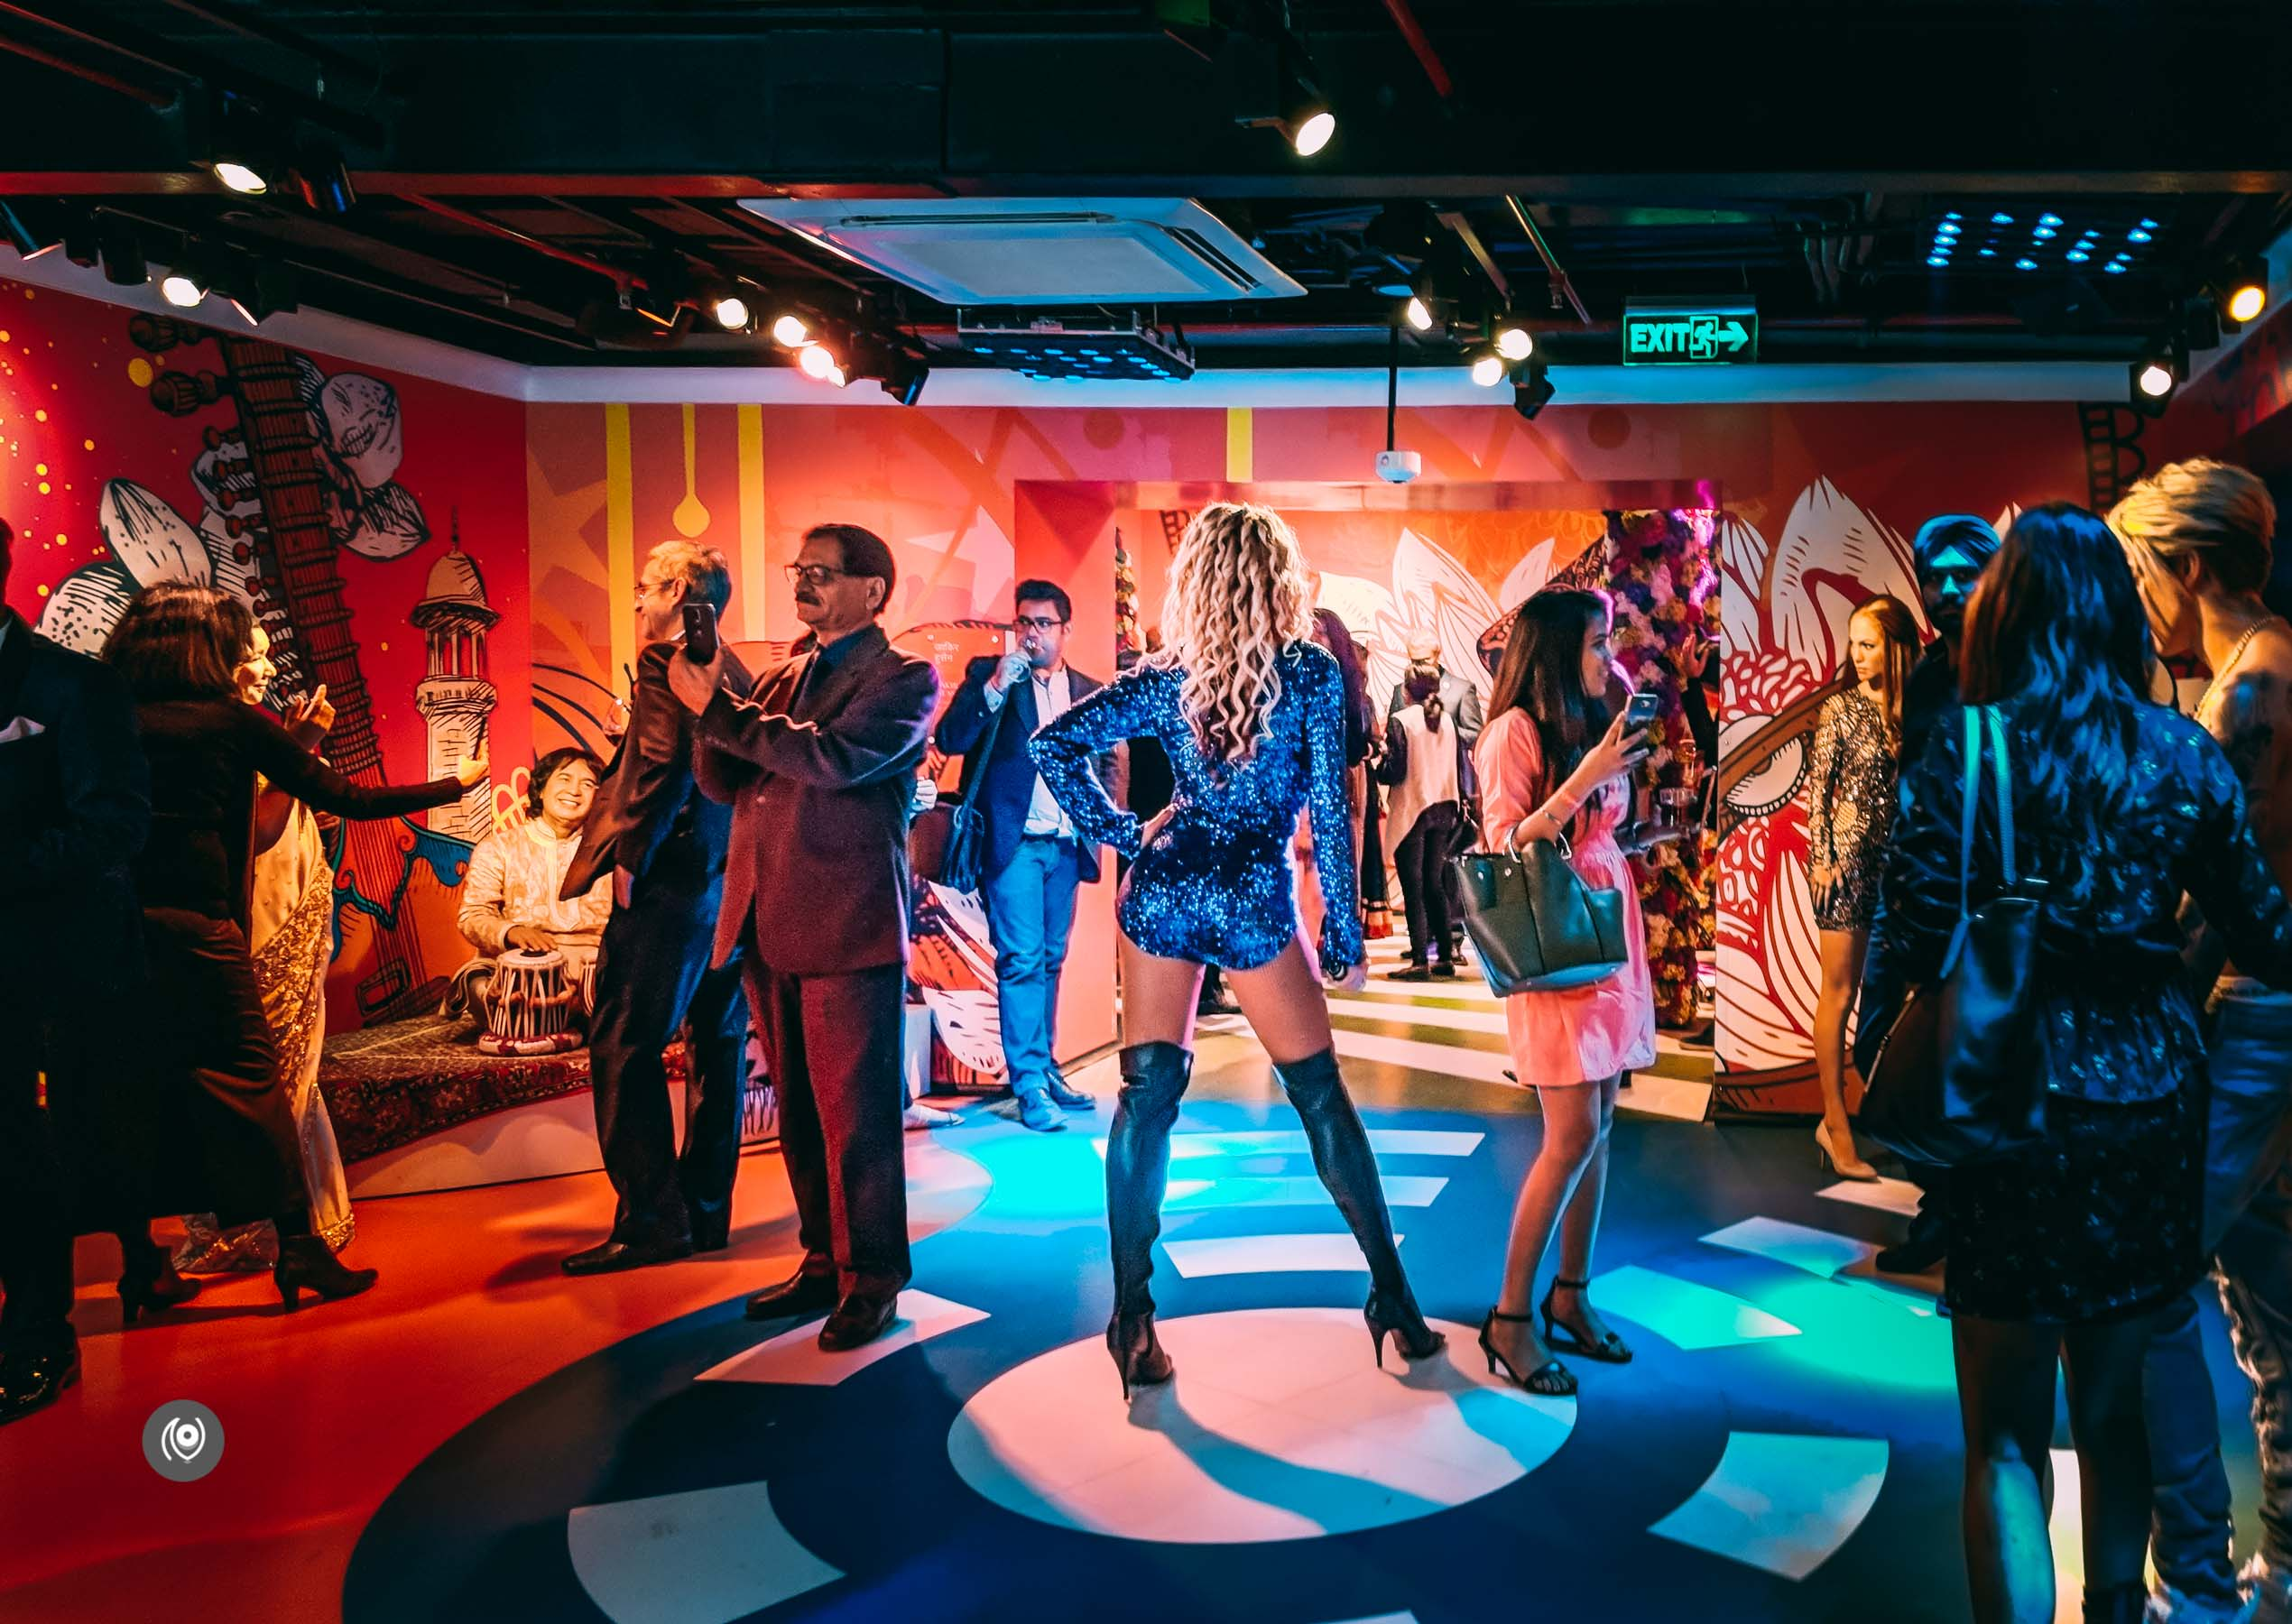 Naina.co, Madame Tussauds Delhi, NAINAxTussaudsDelhi, Madame Tussauds, EyesForLifestyle, Entertainment, Professional Photographer, Professional Blogger, New Delhi, India, Regal Cinema, Launch Campaign, Tickets, Connaught Place, Wax Figures, Narendra Modi, Prime Minister, President, Kim Kardashian, Ranbir Singh, Michael Jackson, Lady Gaga, Artists, Wax figure artists, Shaheed Bhagat Singh, Tom Cruise, Scarlett Johansson, Justin Bieber, David Beckham, Milkha Singh, Asha Bhosle, Anil Kapoor, Bollywood, Celebrities, Marilyn Monroe, Attraction, Launch Event, Launch